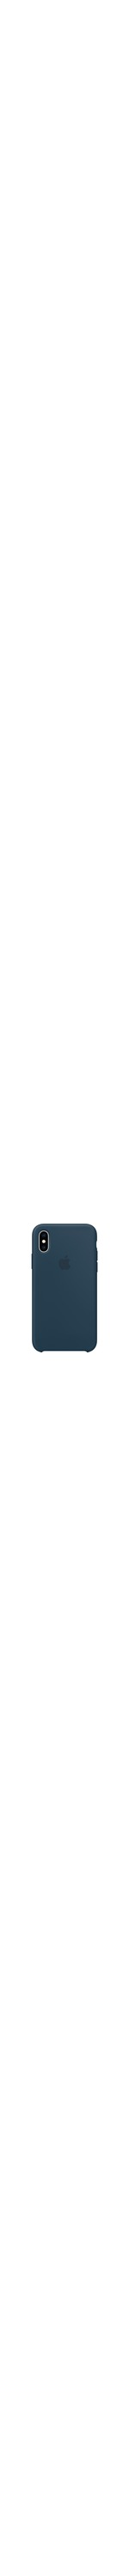 Apple Case for Apple iPhone XS Smartphone - Pacific Green